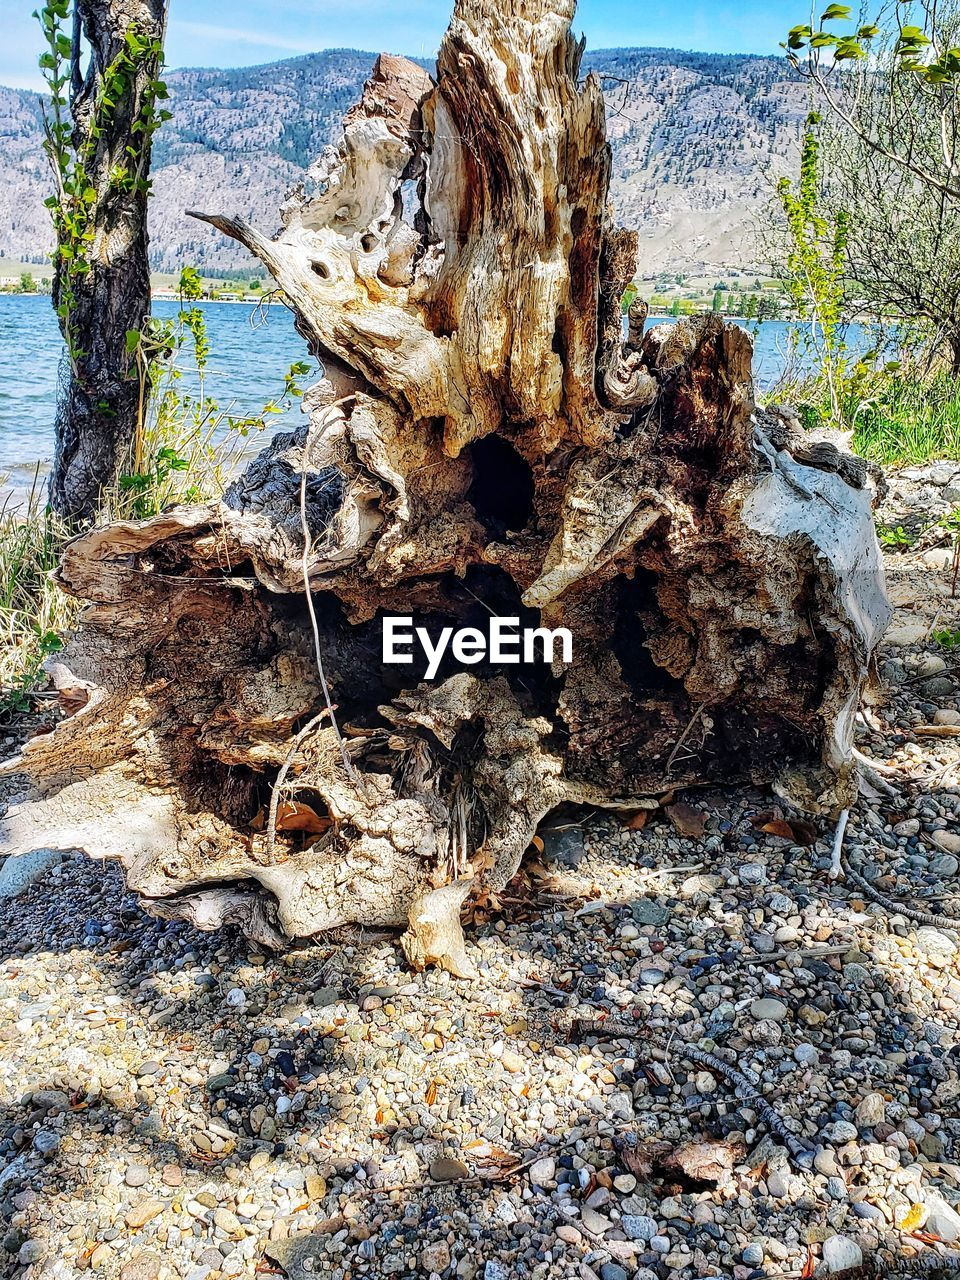 tree, land, nature, day, plant, no people, wood - material, tree trunk, trunk, sunlight, growth, tranquility, field, bark, textured, outdoors, tree stump, dead plant, forest, beach